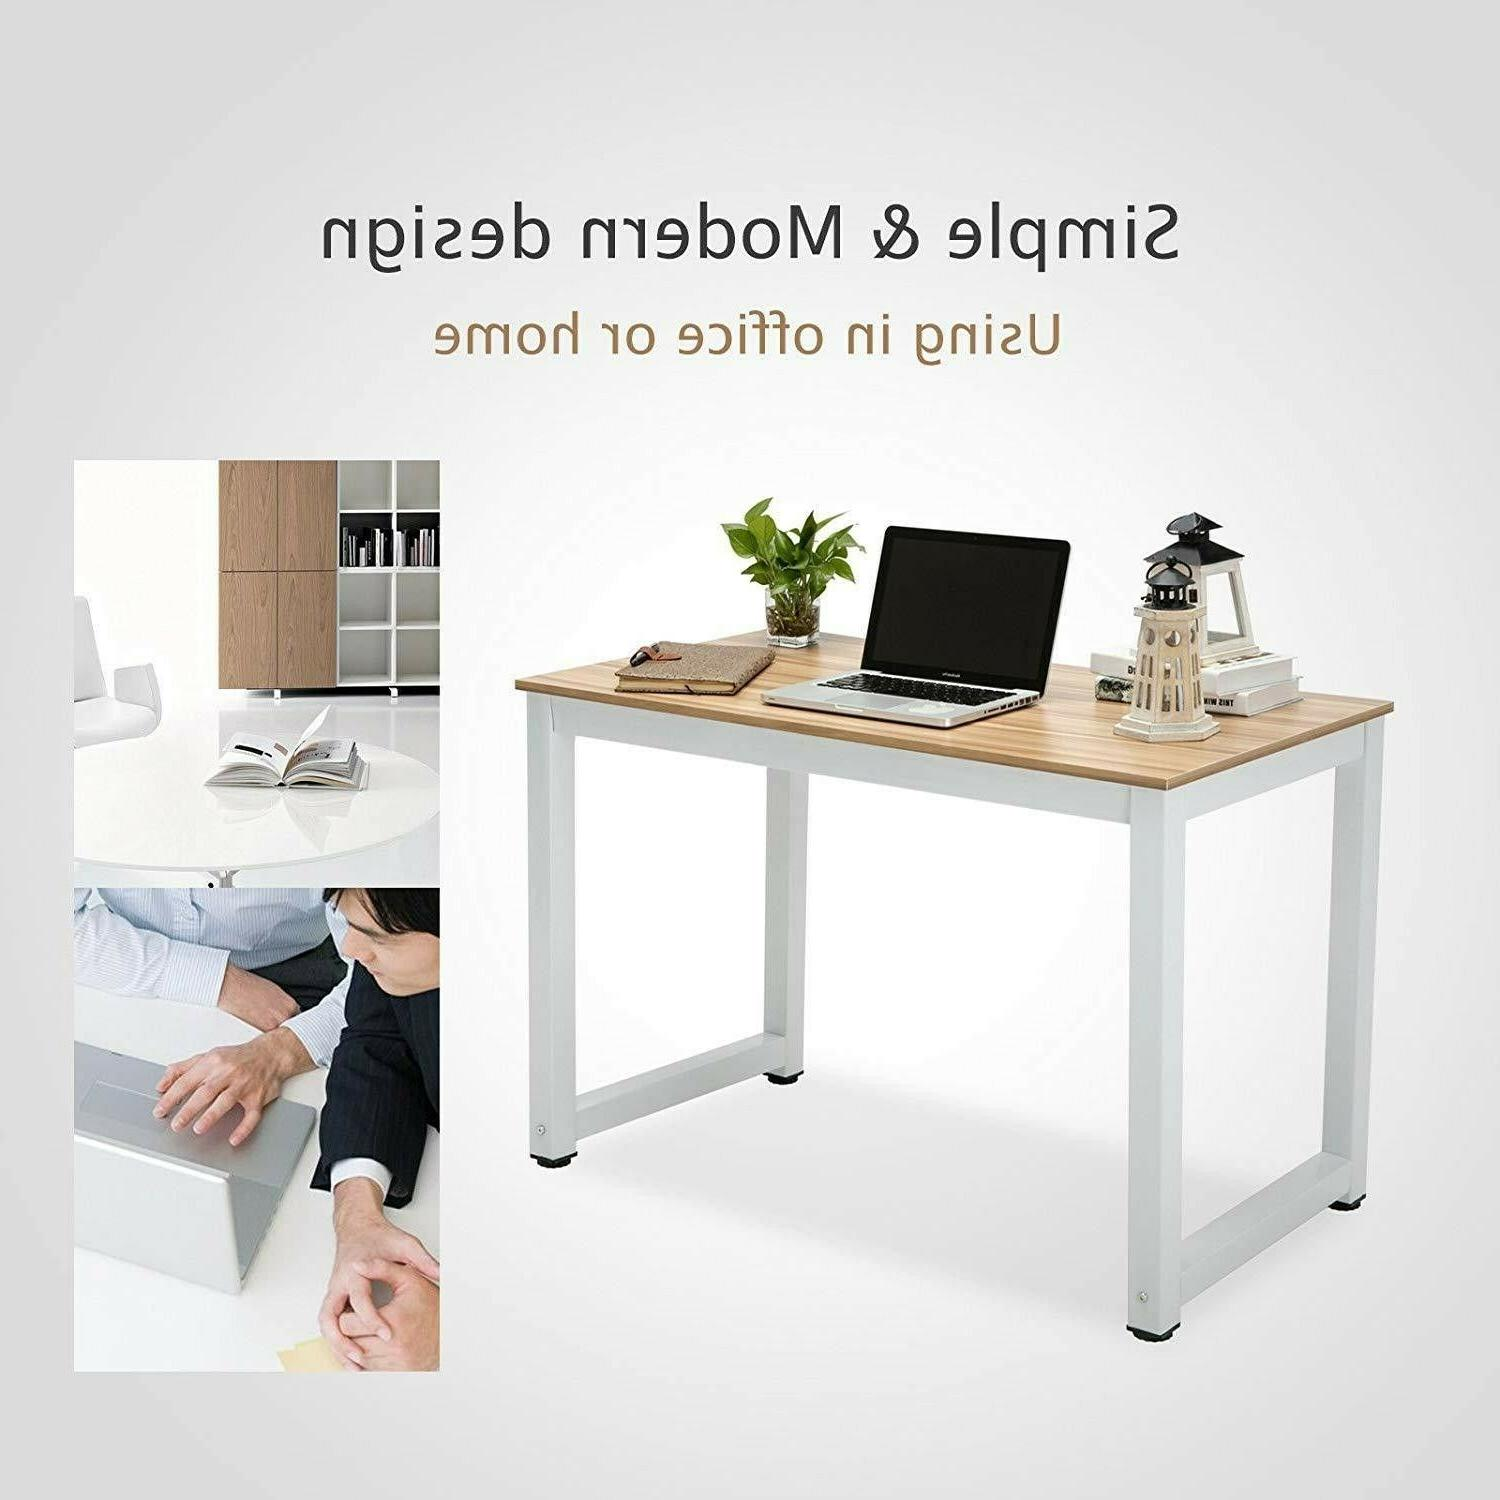 43inch Office Desk PC Table Study Work-Station Of